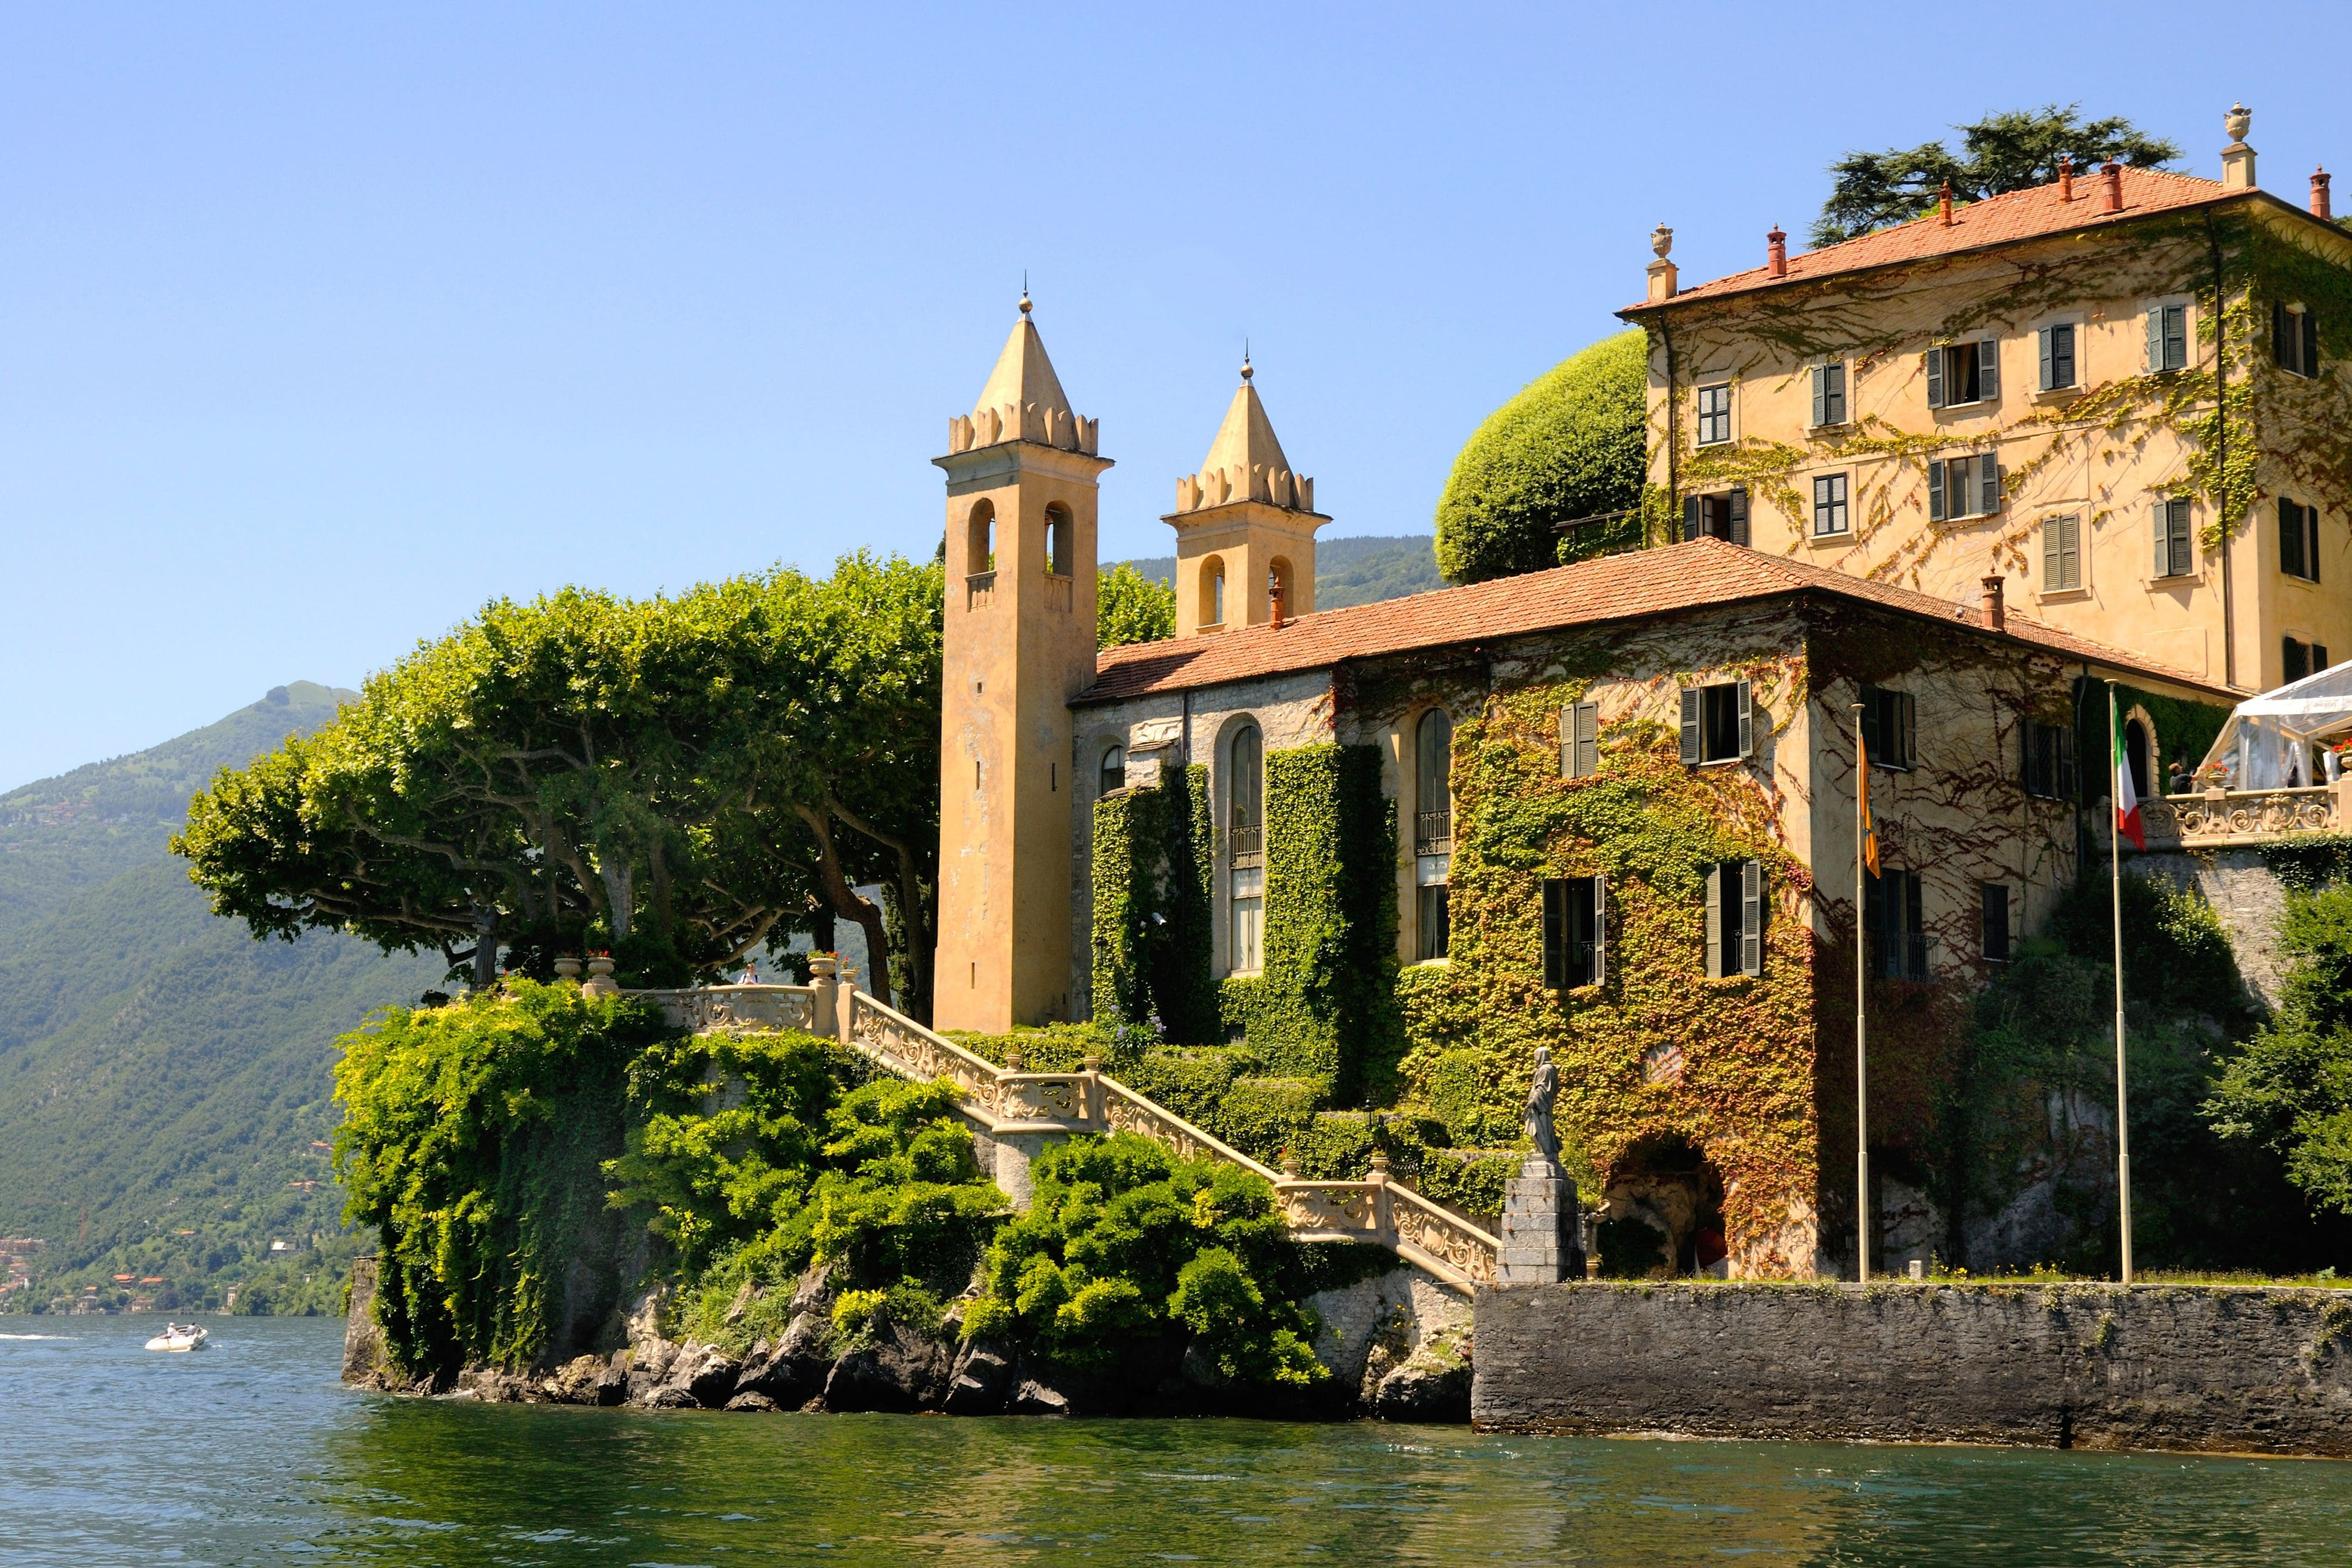 The ivy-covered walls of Villa del Balbianello with its turrets on the headland on the banks of Lake Como